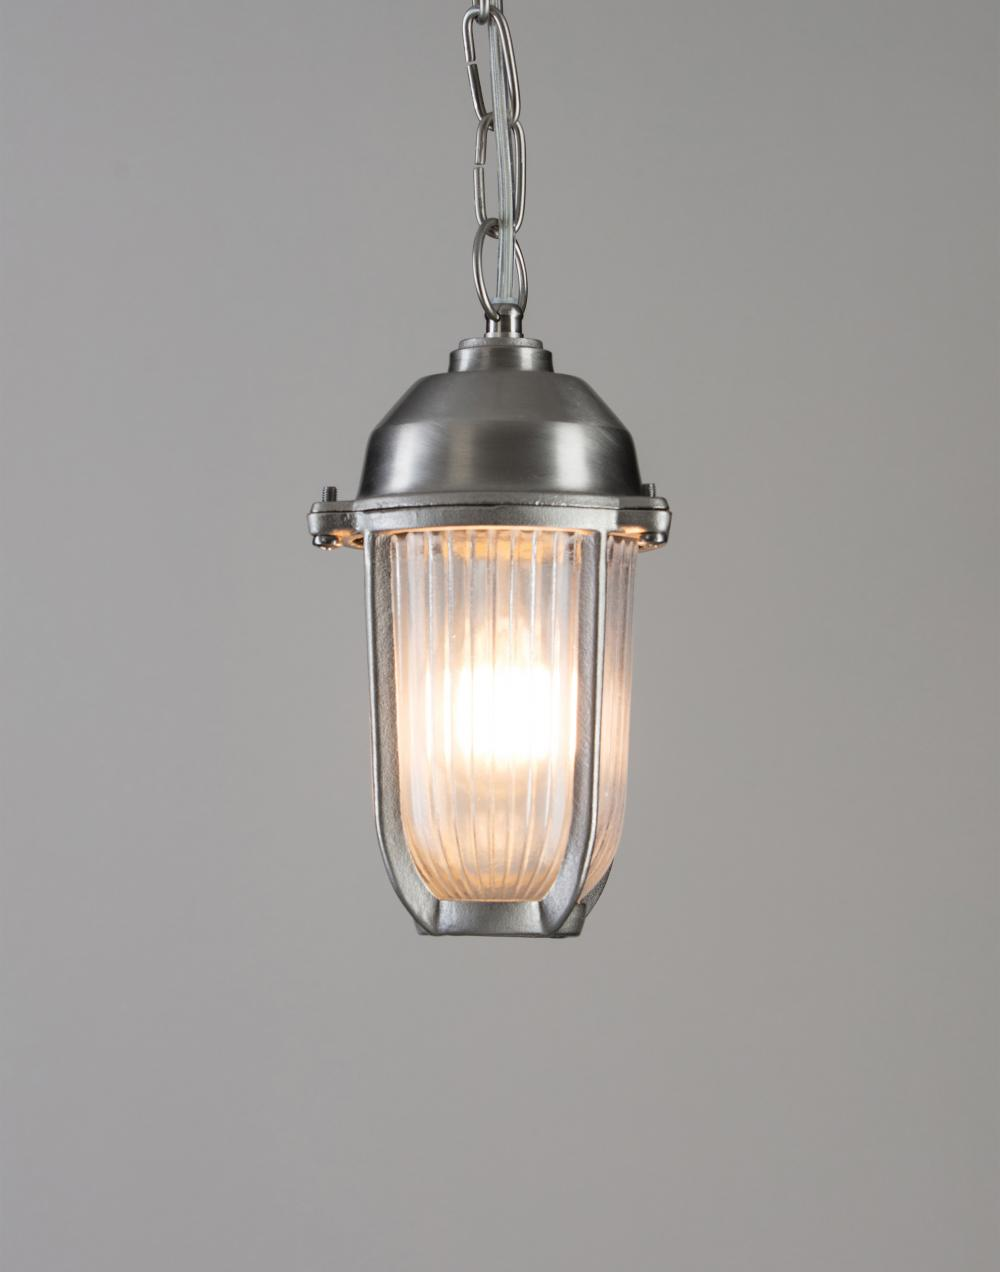 CLEARANCE: Boatyard pendant - 40% OFF